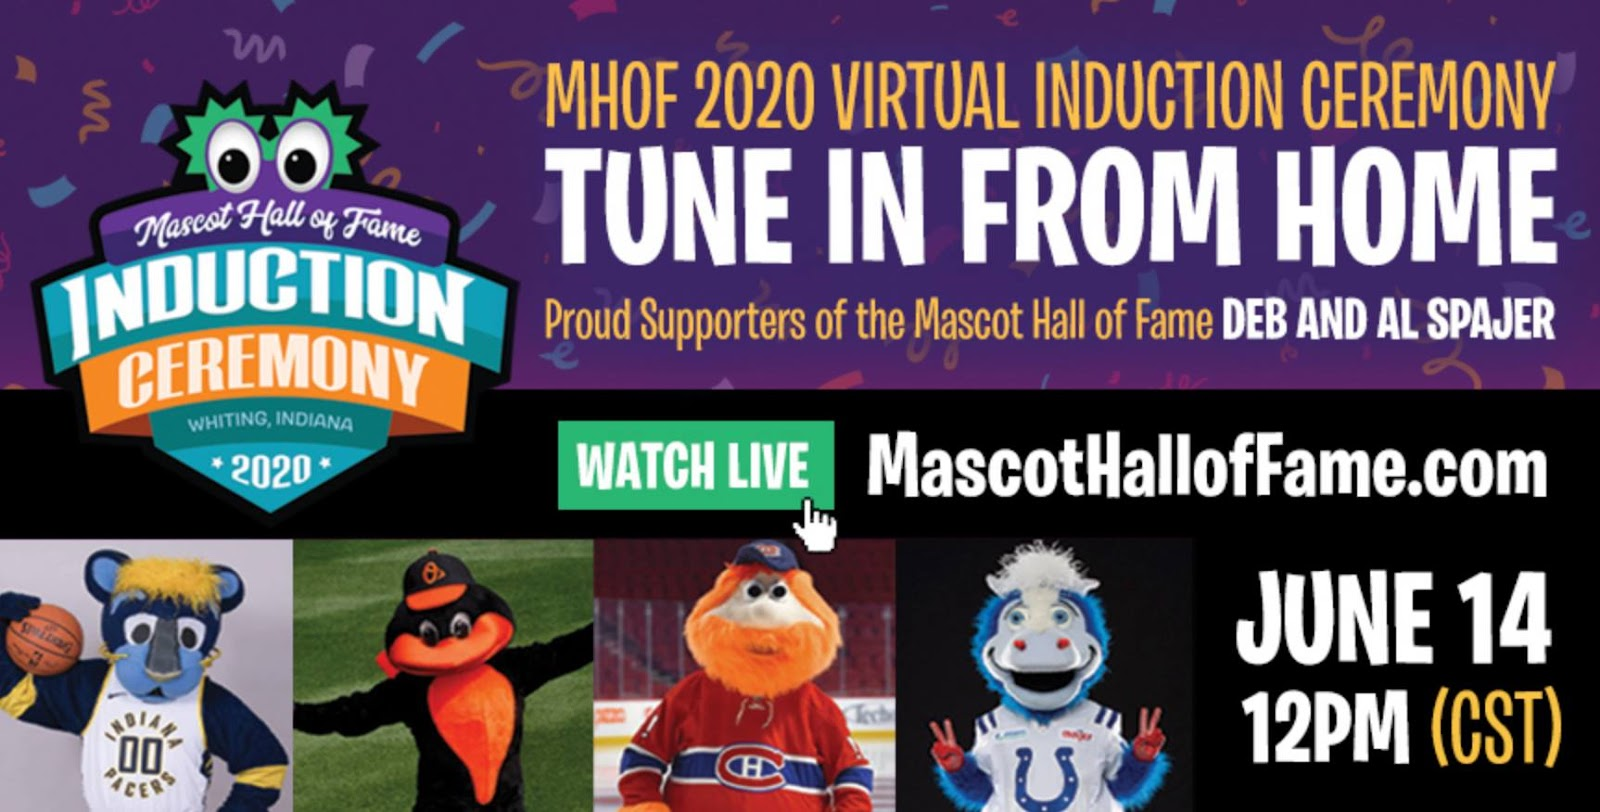 Mascot Hall of Fame induction ceremony 2020